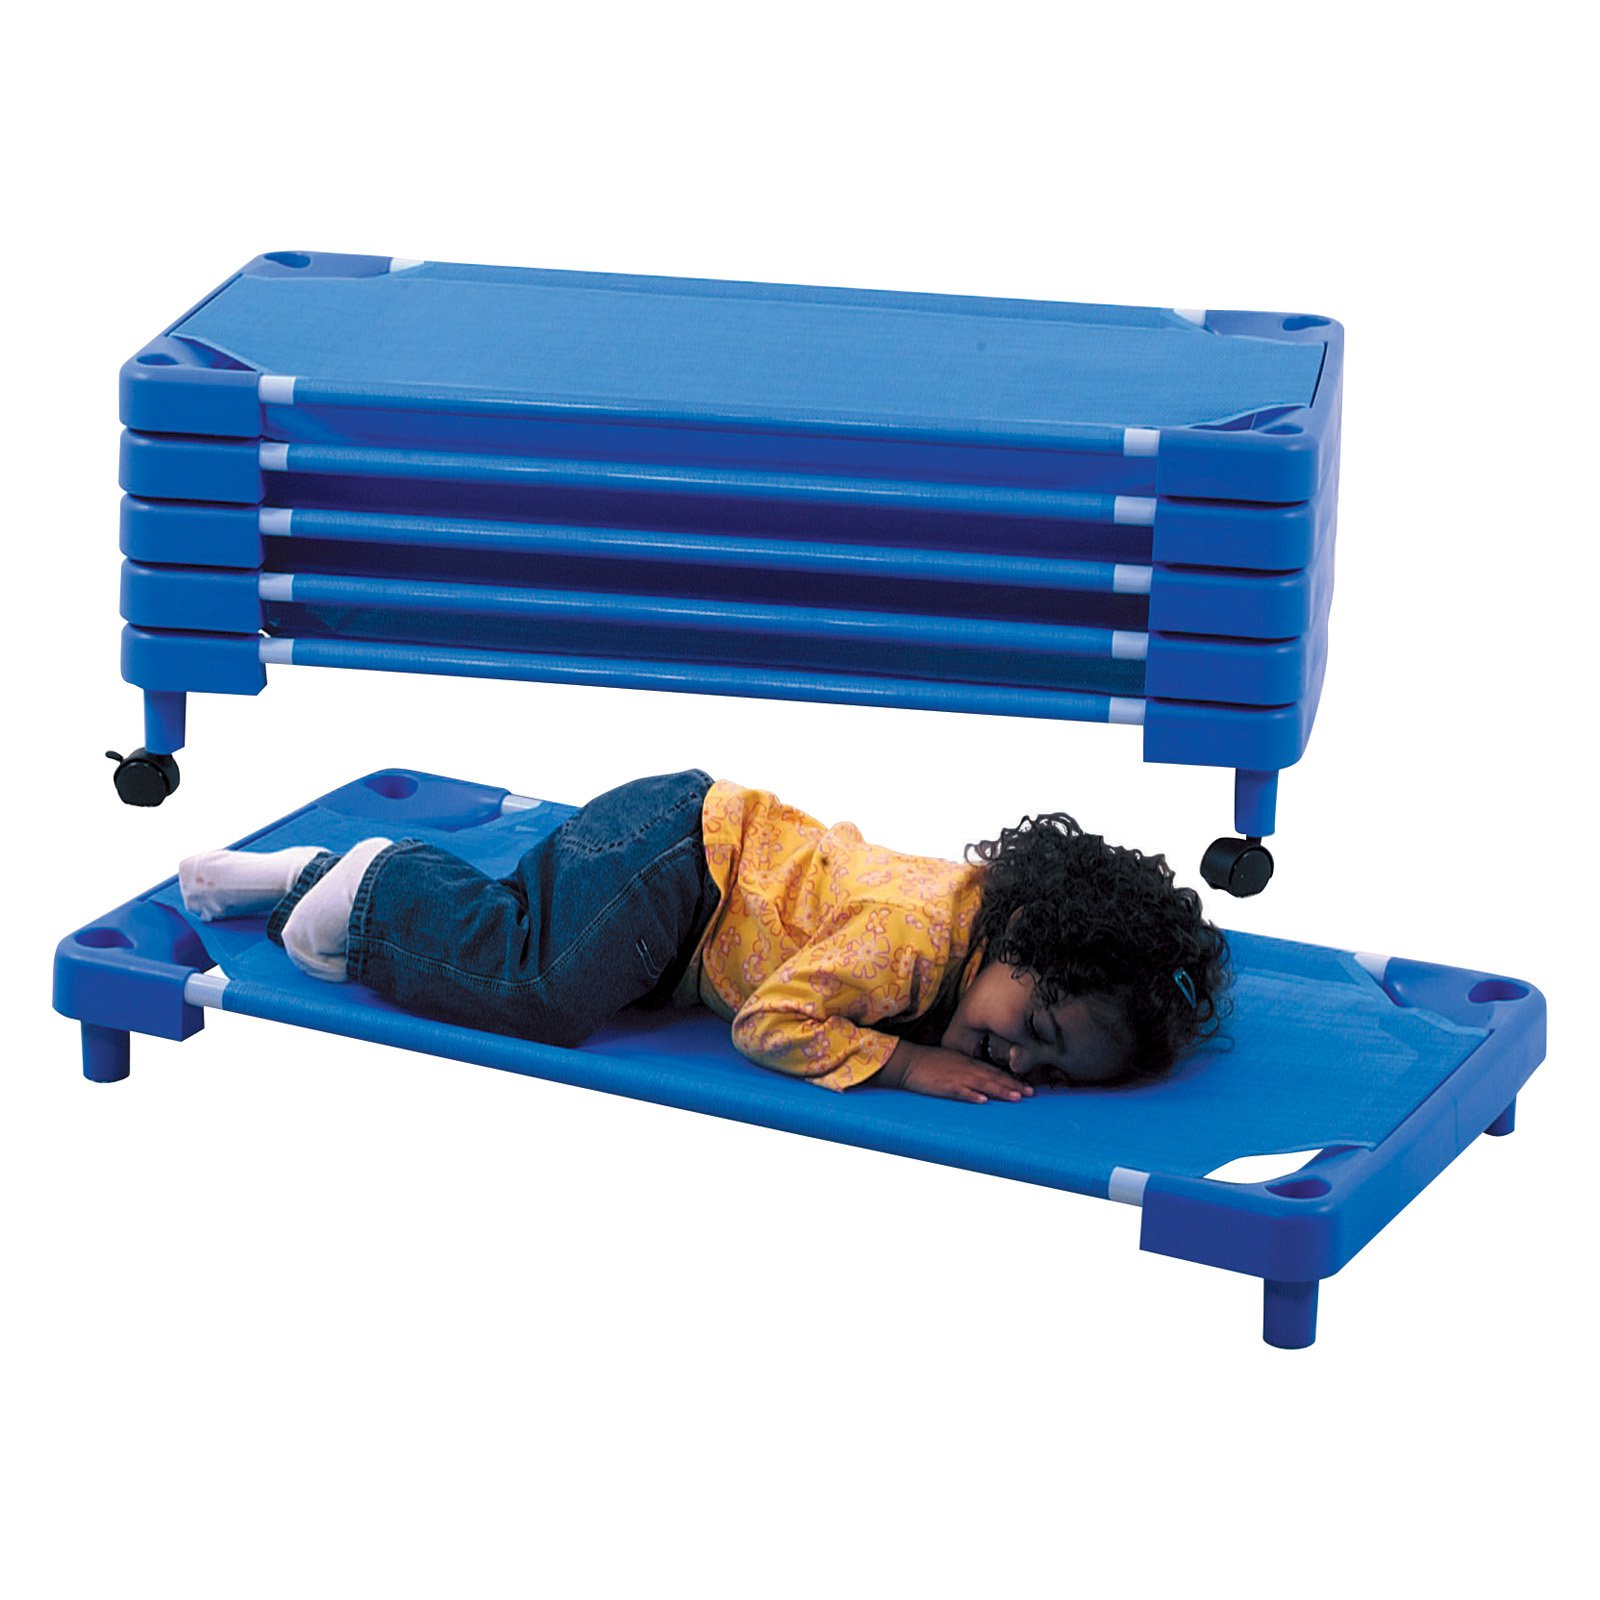 Children's Factory Rest Time Toddler Cot by Children's Factory